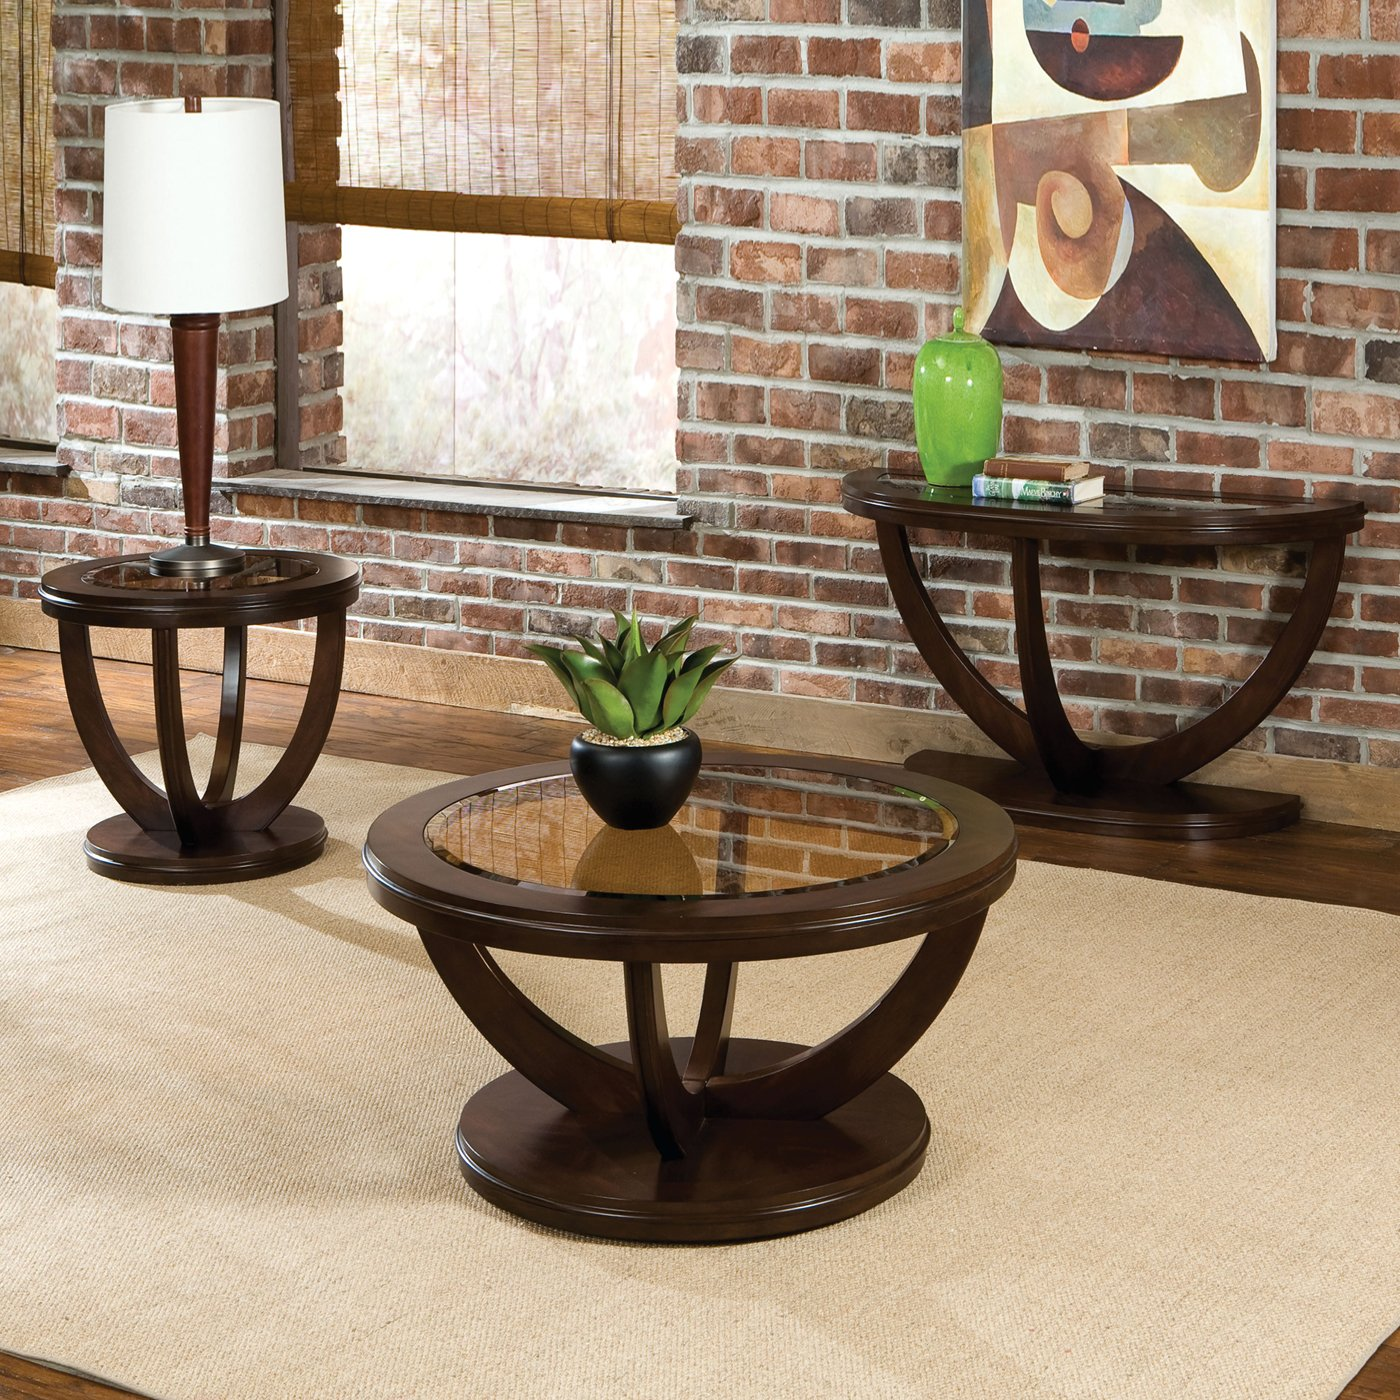 zenith end table the super free black side set tures breathtaking round living room dimitri coffee fabulous accent tables with storage square glass and sets piece narrow wood for